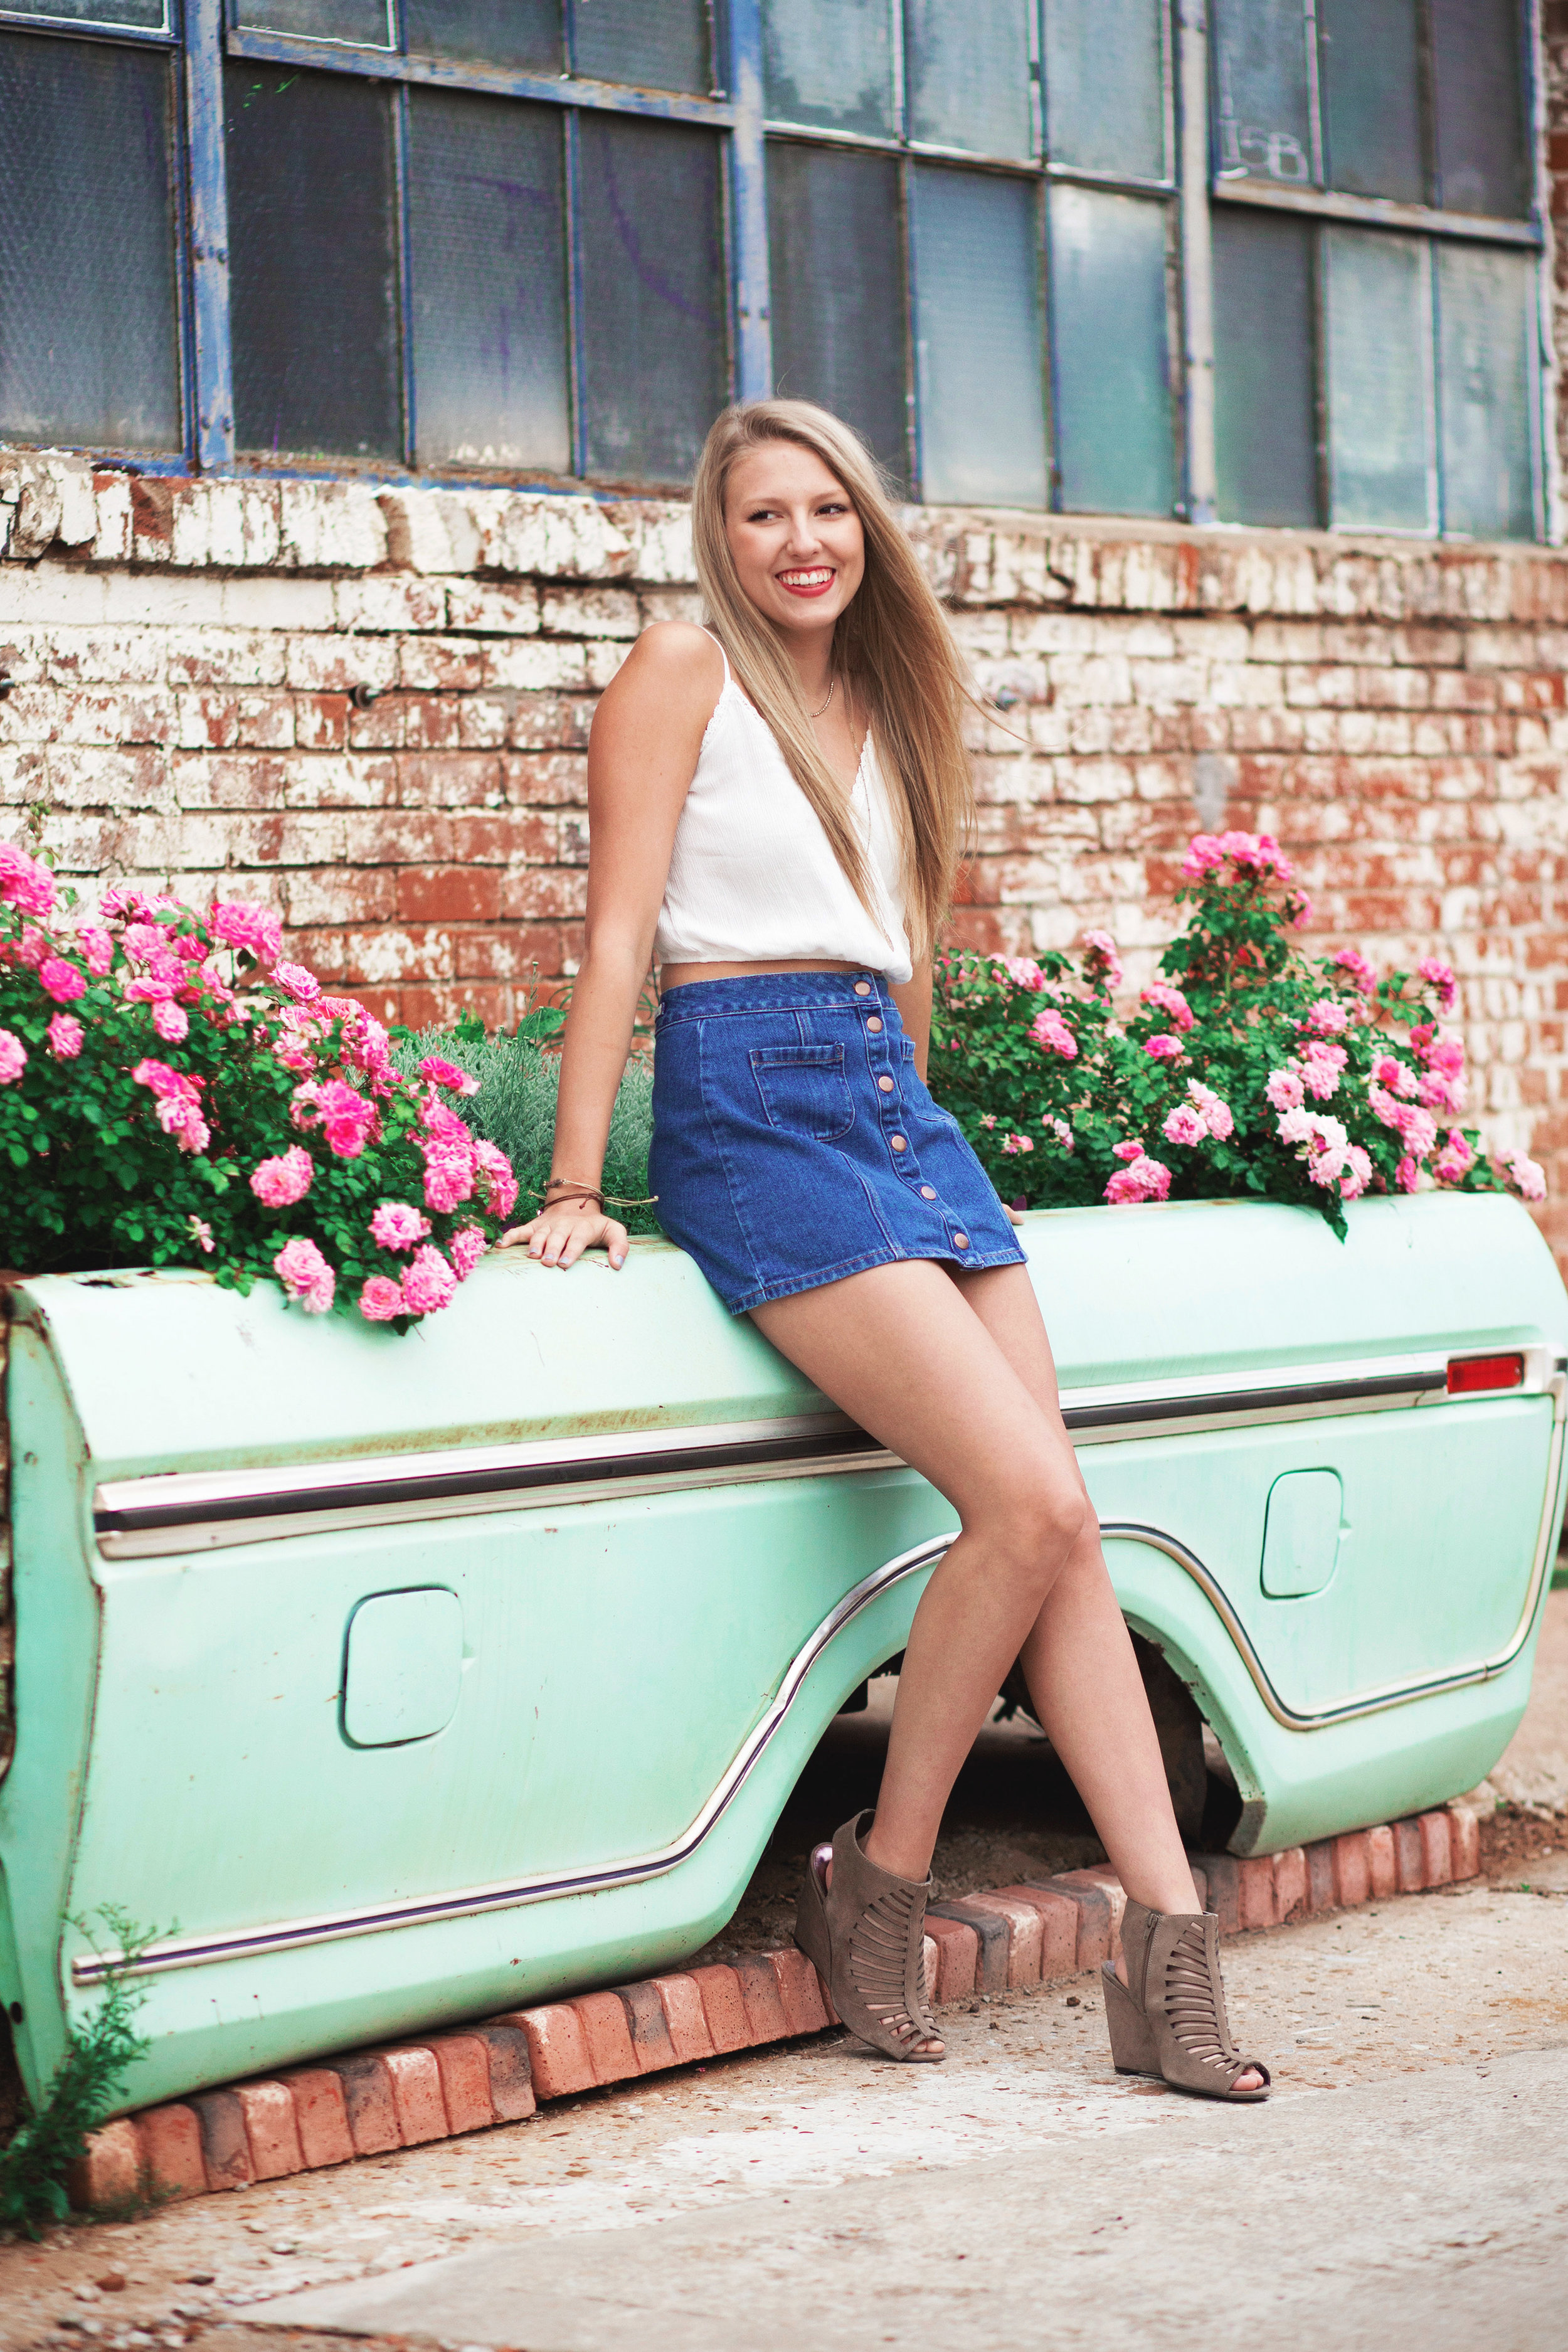 High school senior girl wearing a mini skirt leaning against old pick up bed in an alley in Oklahoma City.